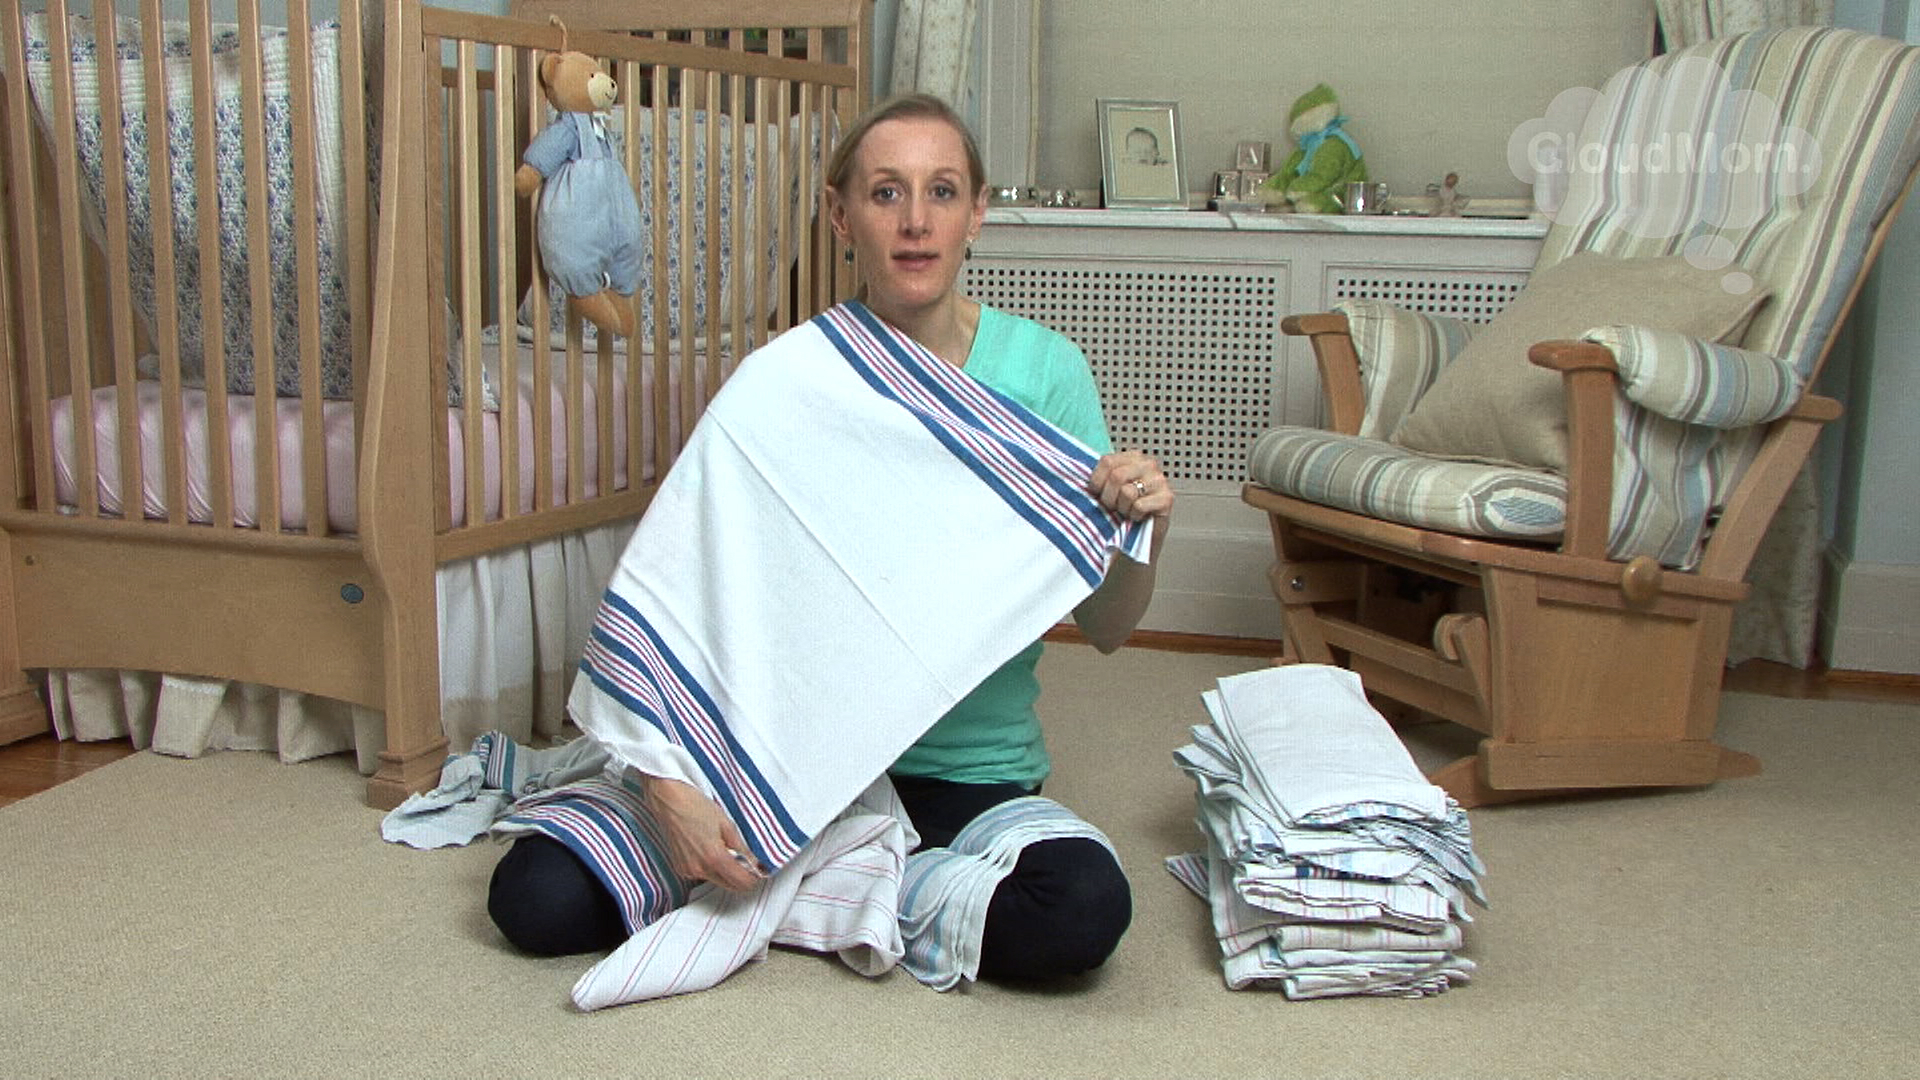 One Must Have For Baby: The Hospital Burp Cloth!